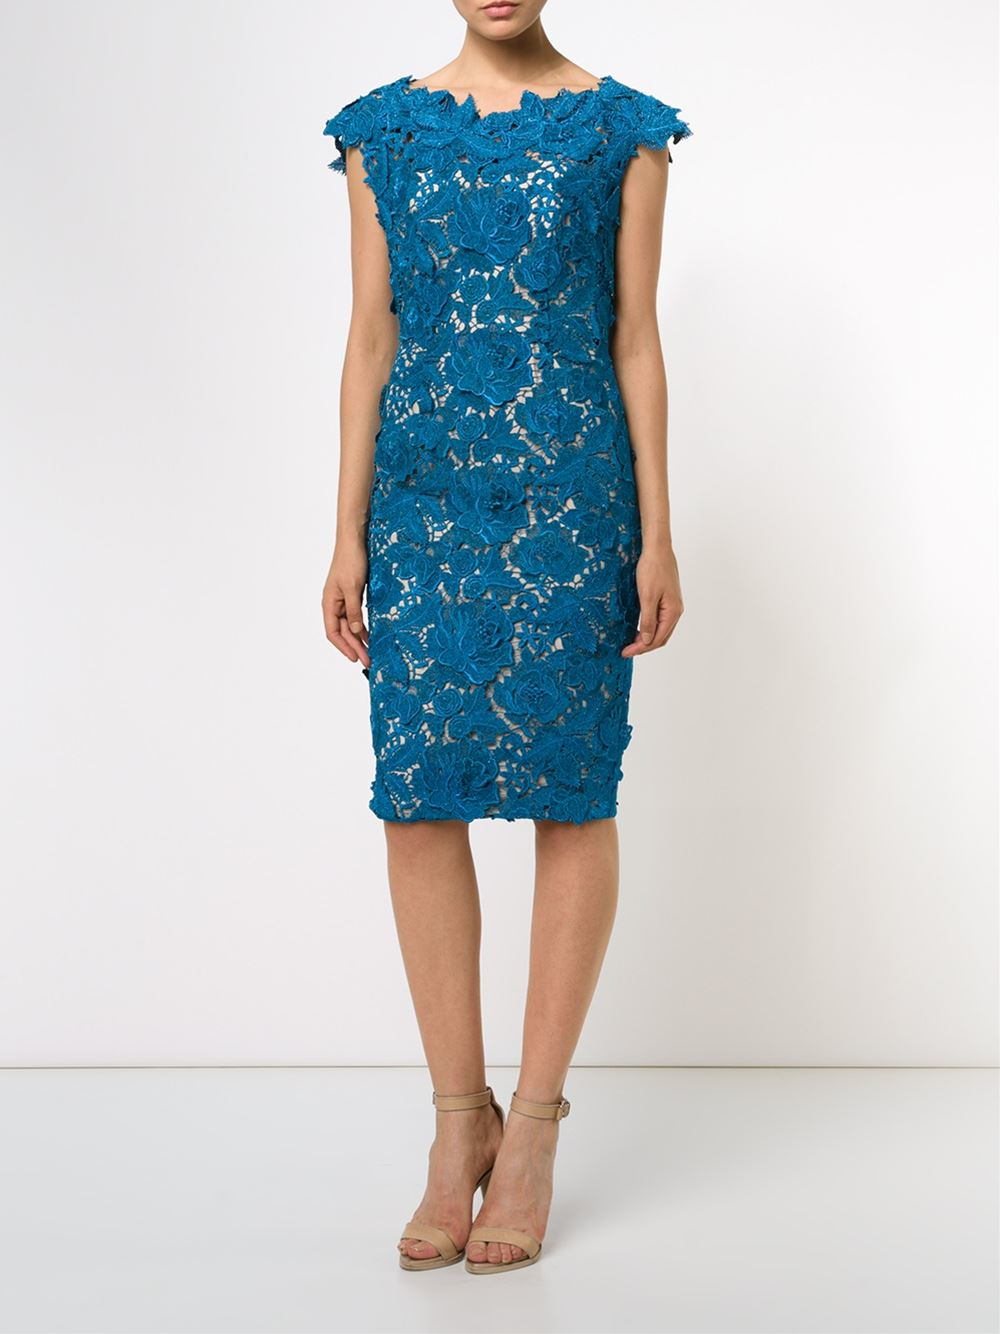 Lela rose embroidered fitted dress in teal blue lyst